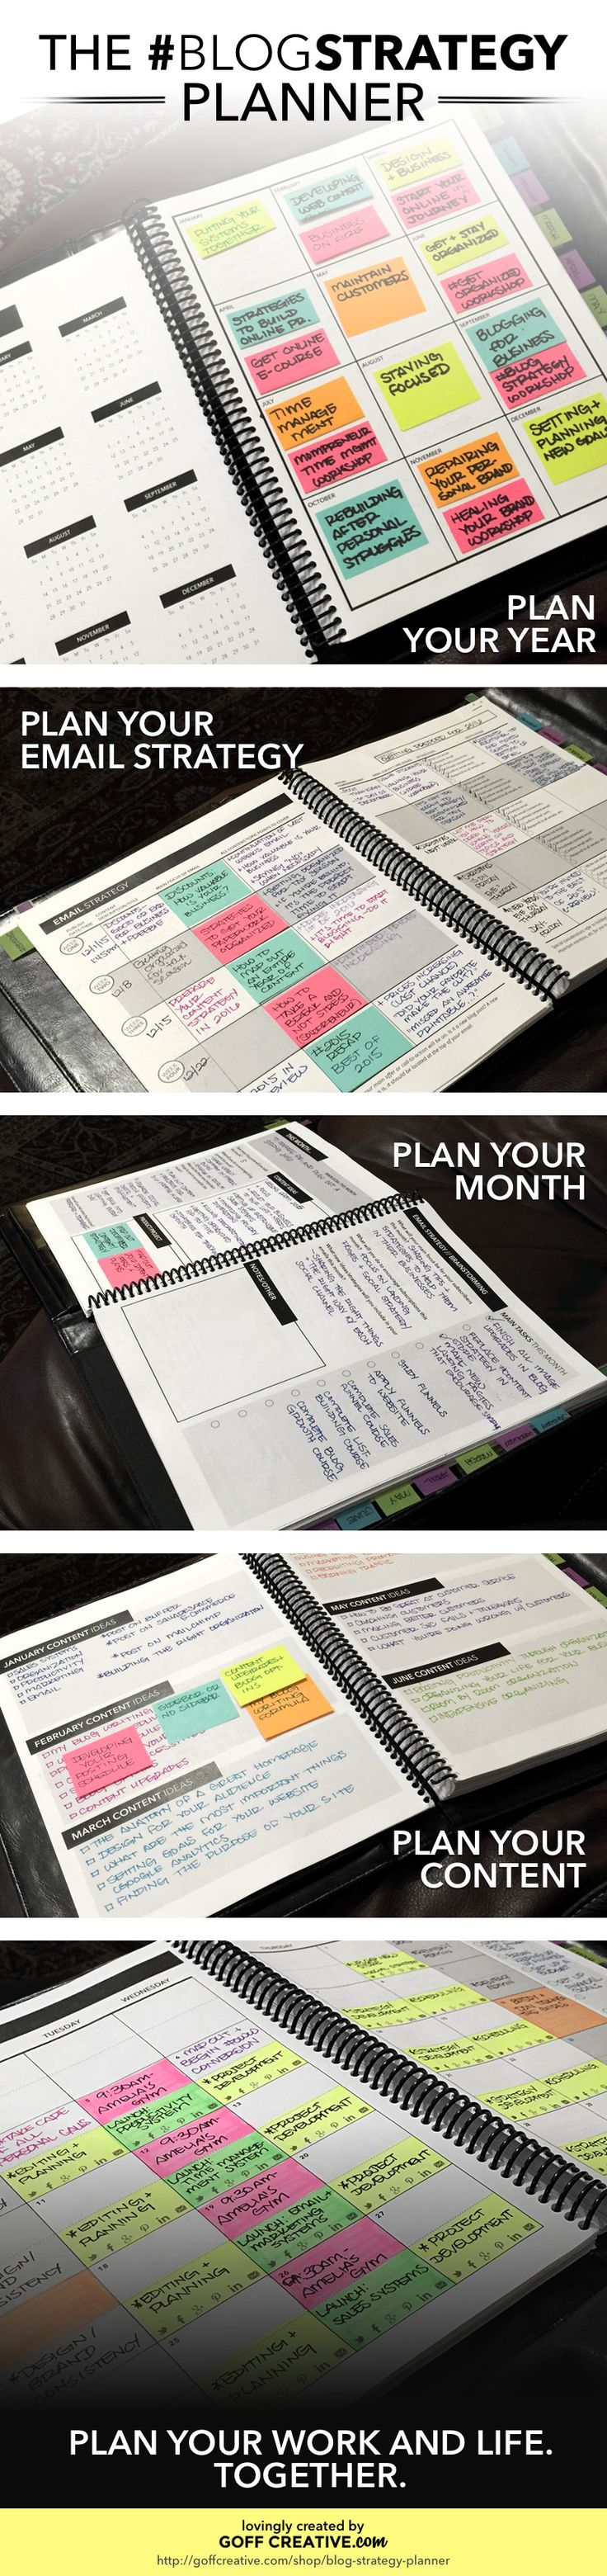 #BlogStrategy Planner Preview | GoffCreative.com